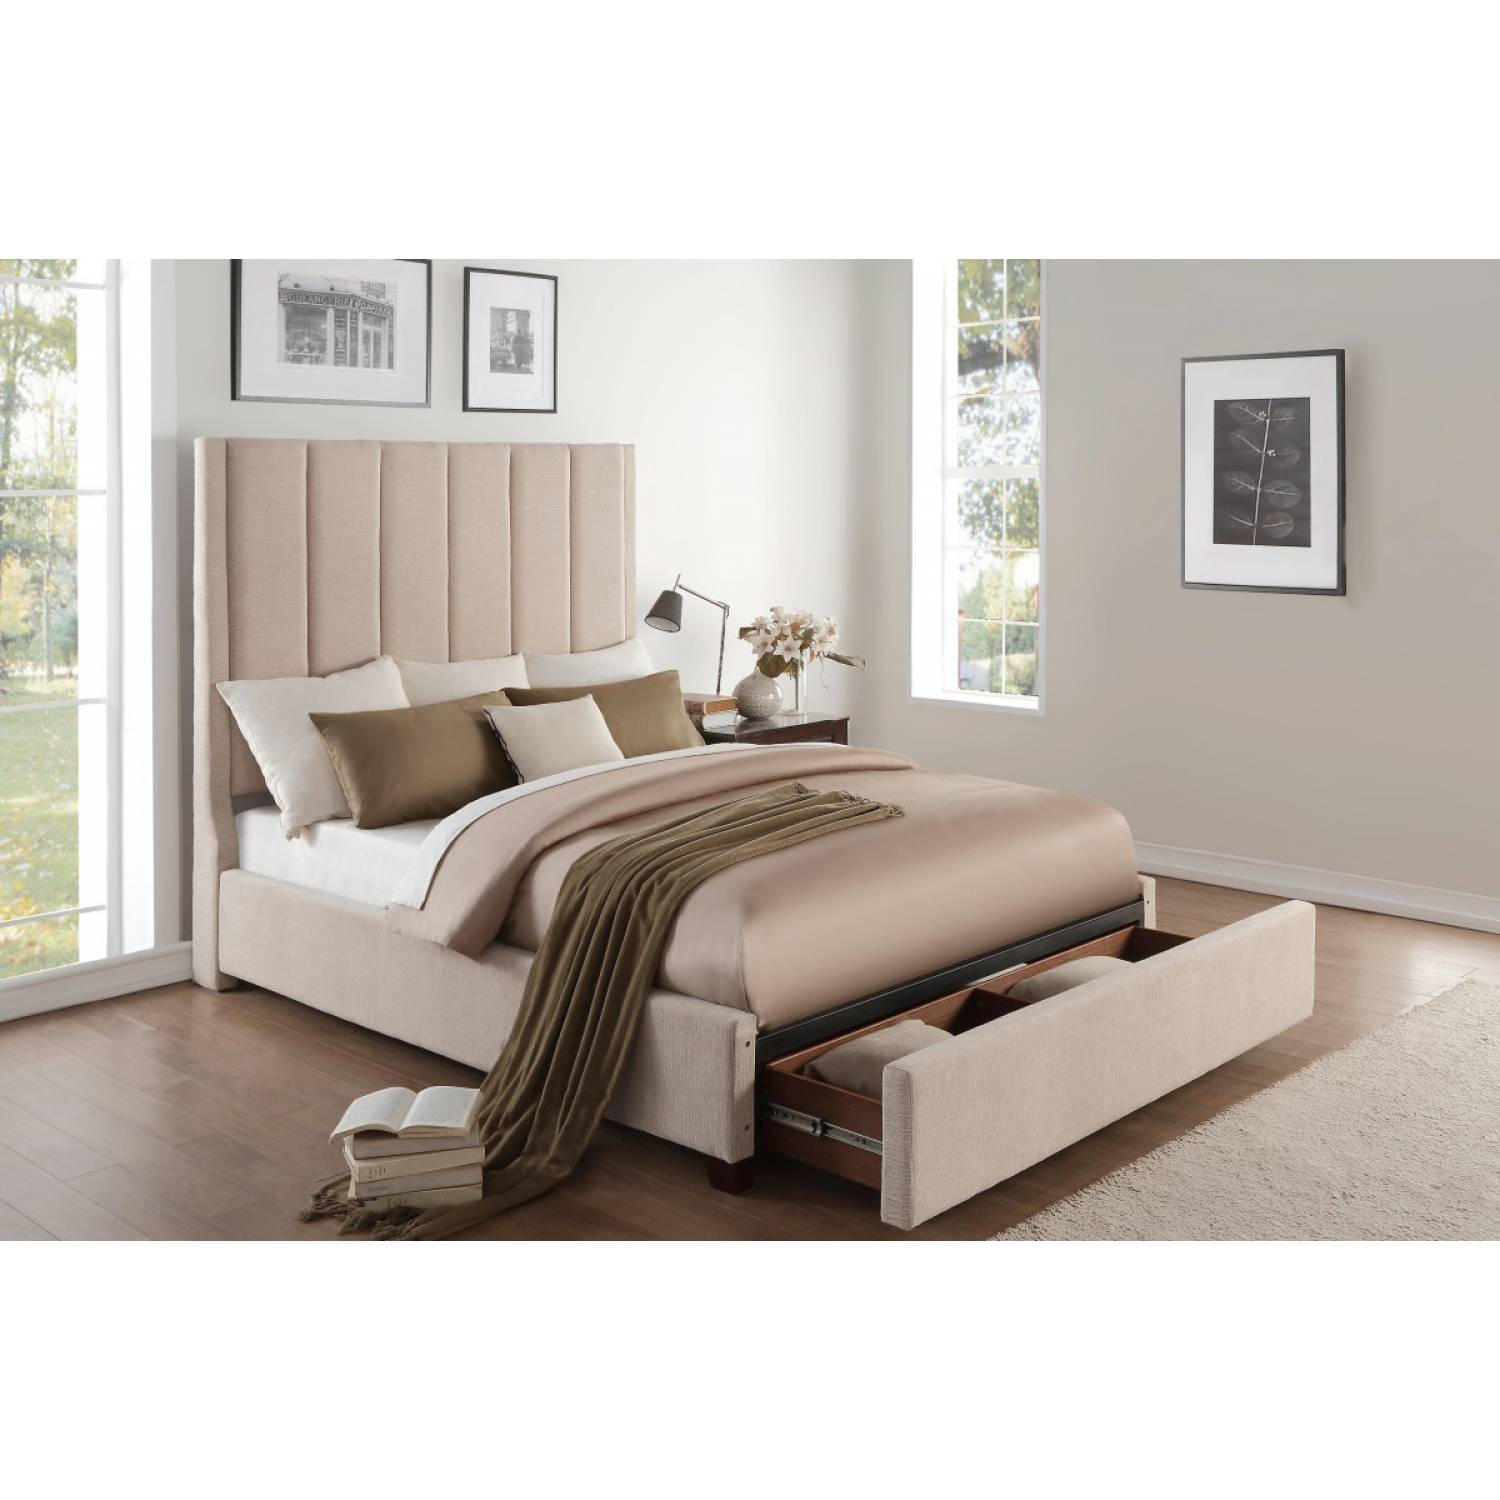 5876nrbe 1 Queen Platform Bed With Storage Footboard